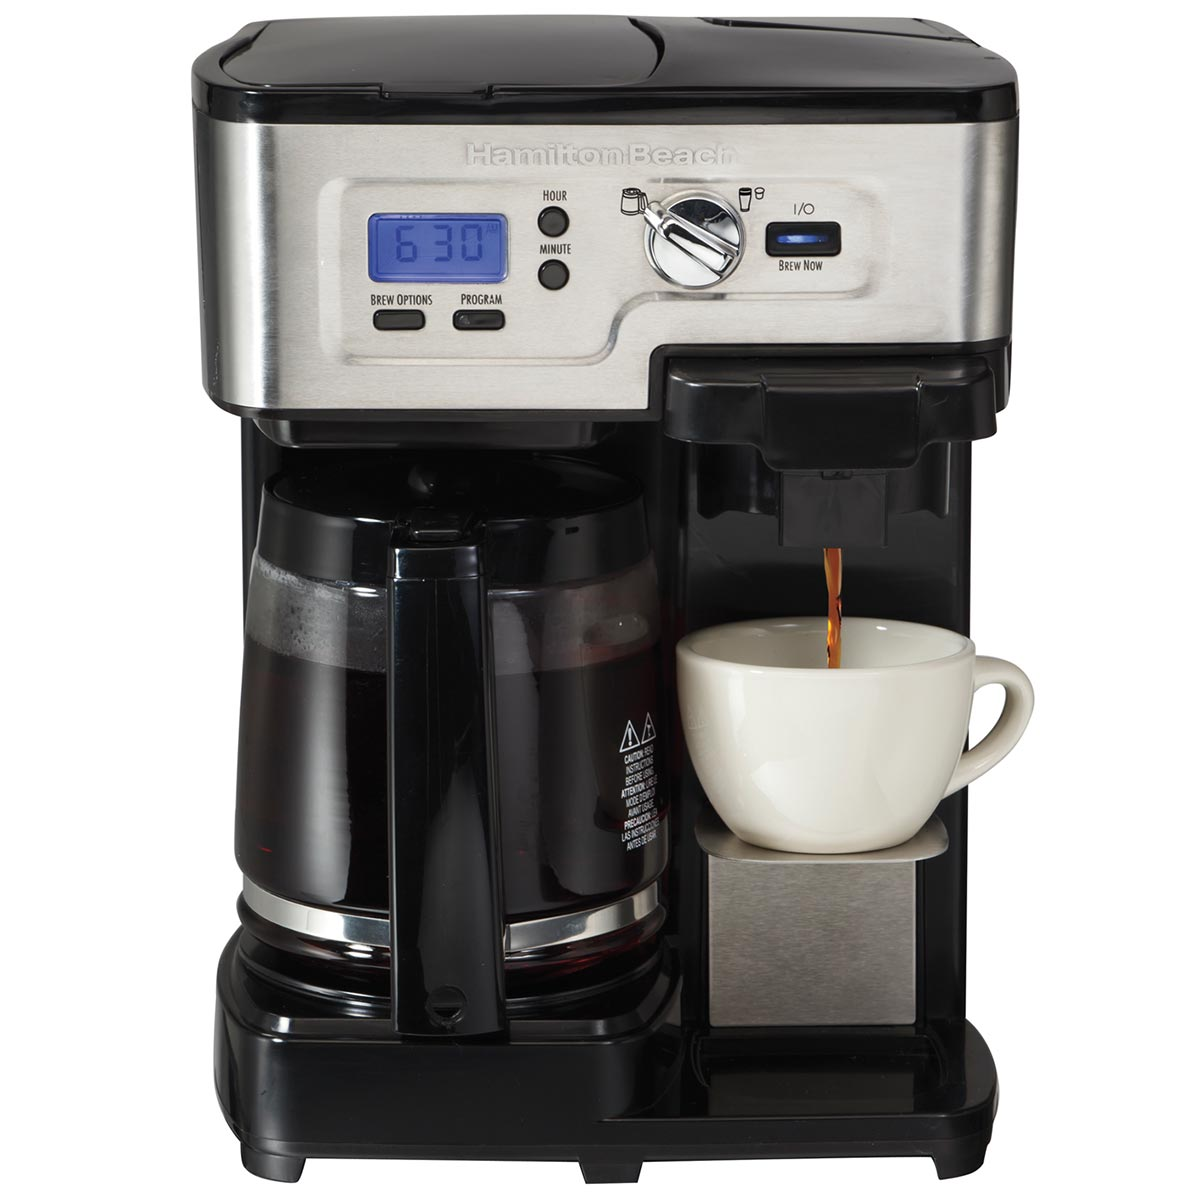 FlexBrew® 2-Way Coffee Maker with 12-Cup Carafe & Pod Brewing, Black & Stainless (49983)